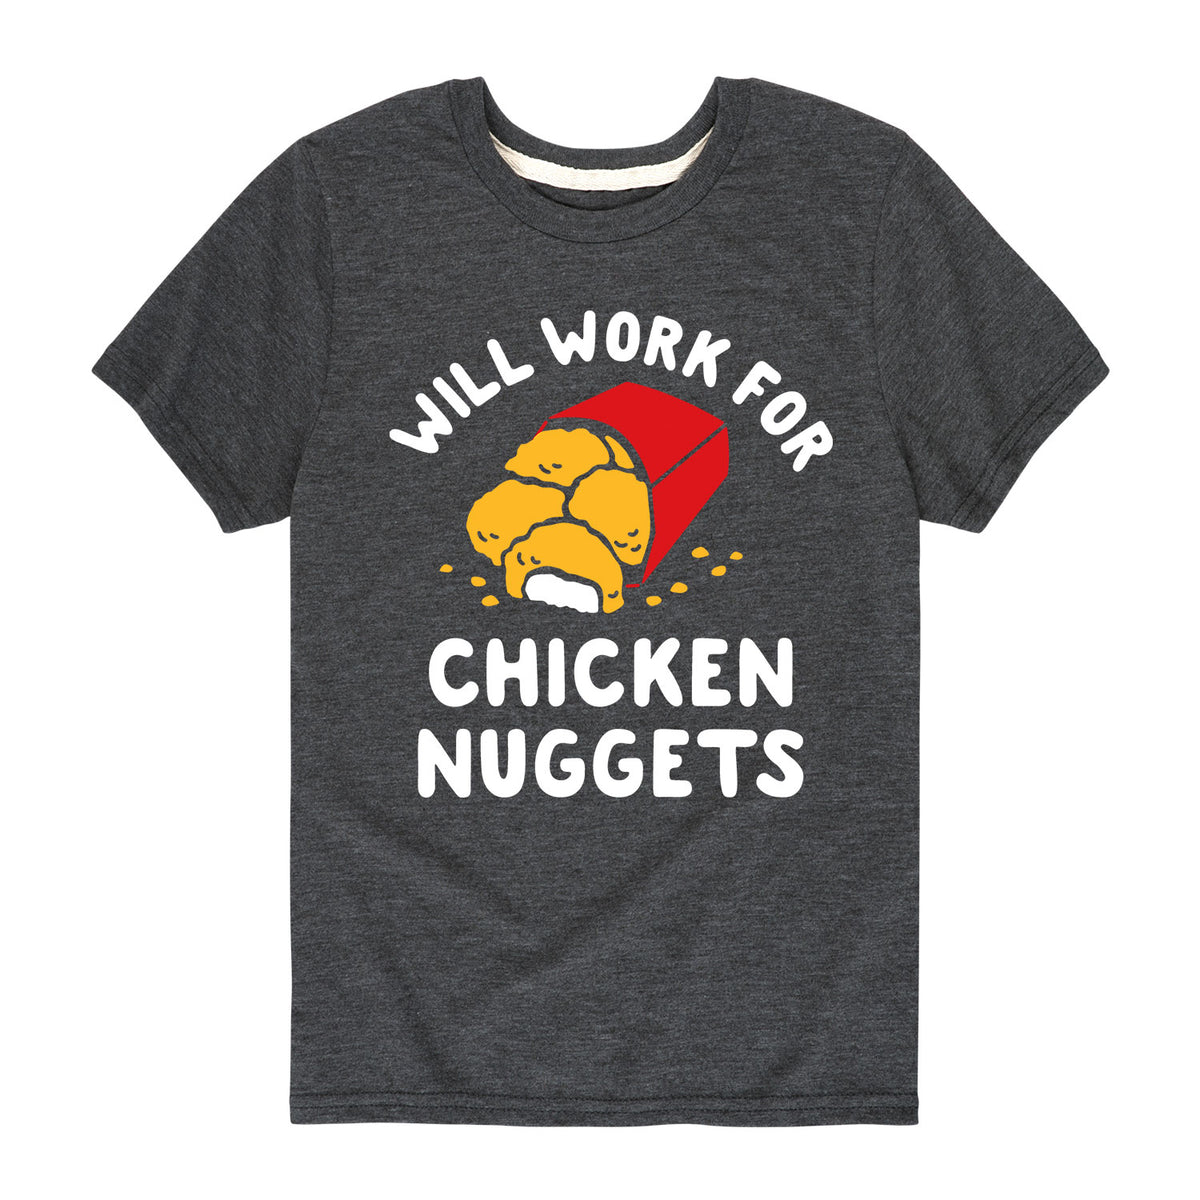 Will Work for Chicken Nuggets - Youth & Toddler Short Sleeve T-Shirt